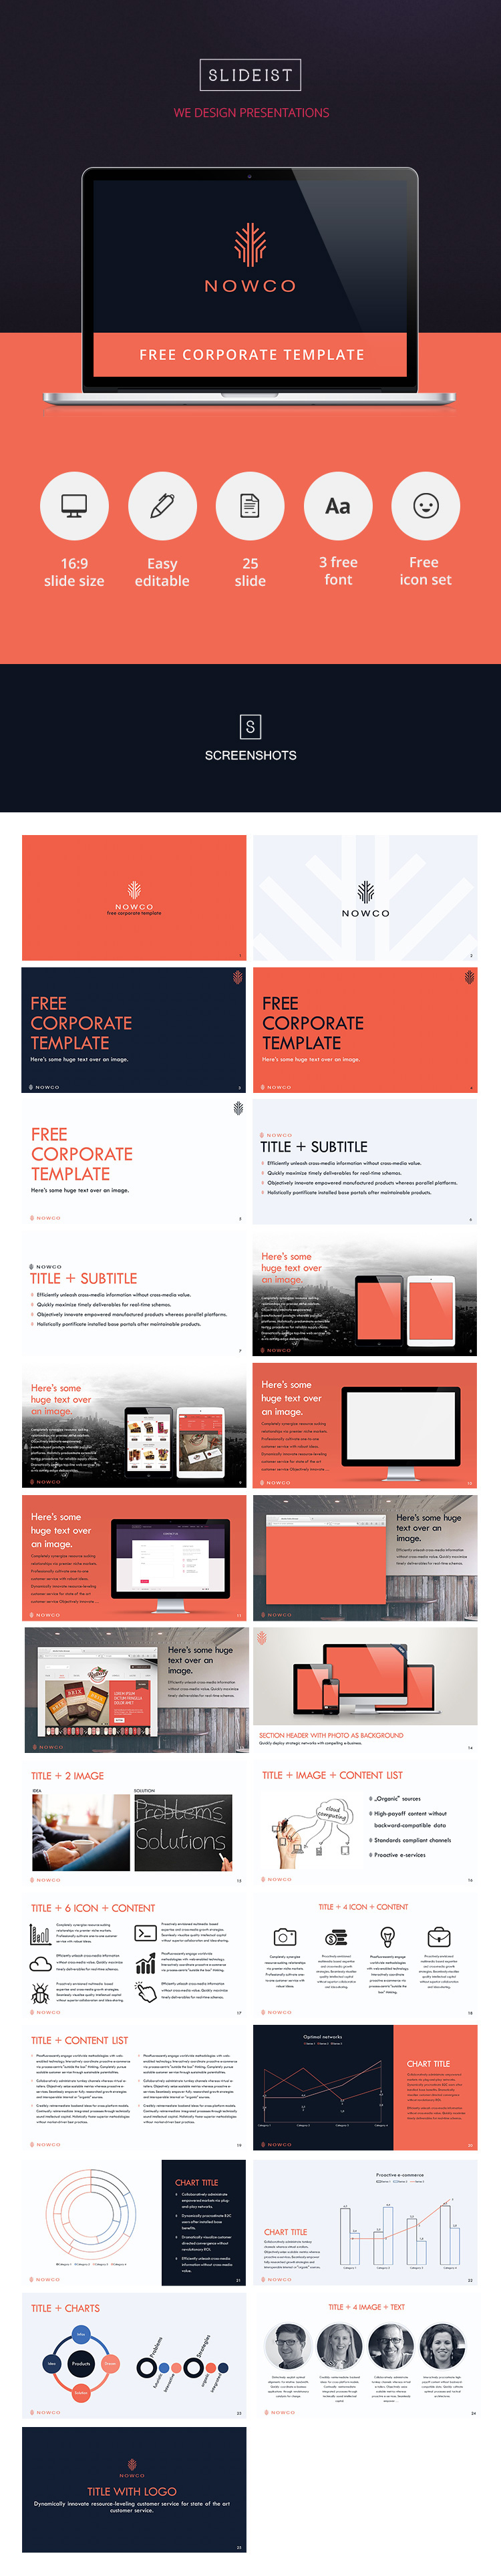 Powerpoint templates free download wdohoc1c kil pinterest powerpoint templates free download wdohoc1c kil pinterest free ppt template ppt template and themes free alramifo Gallery